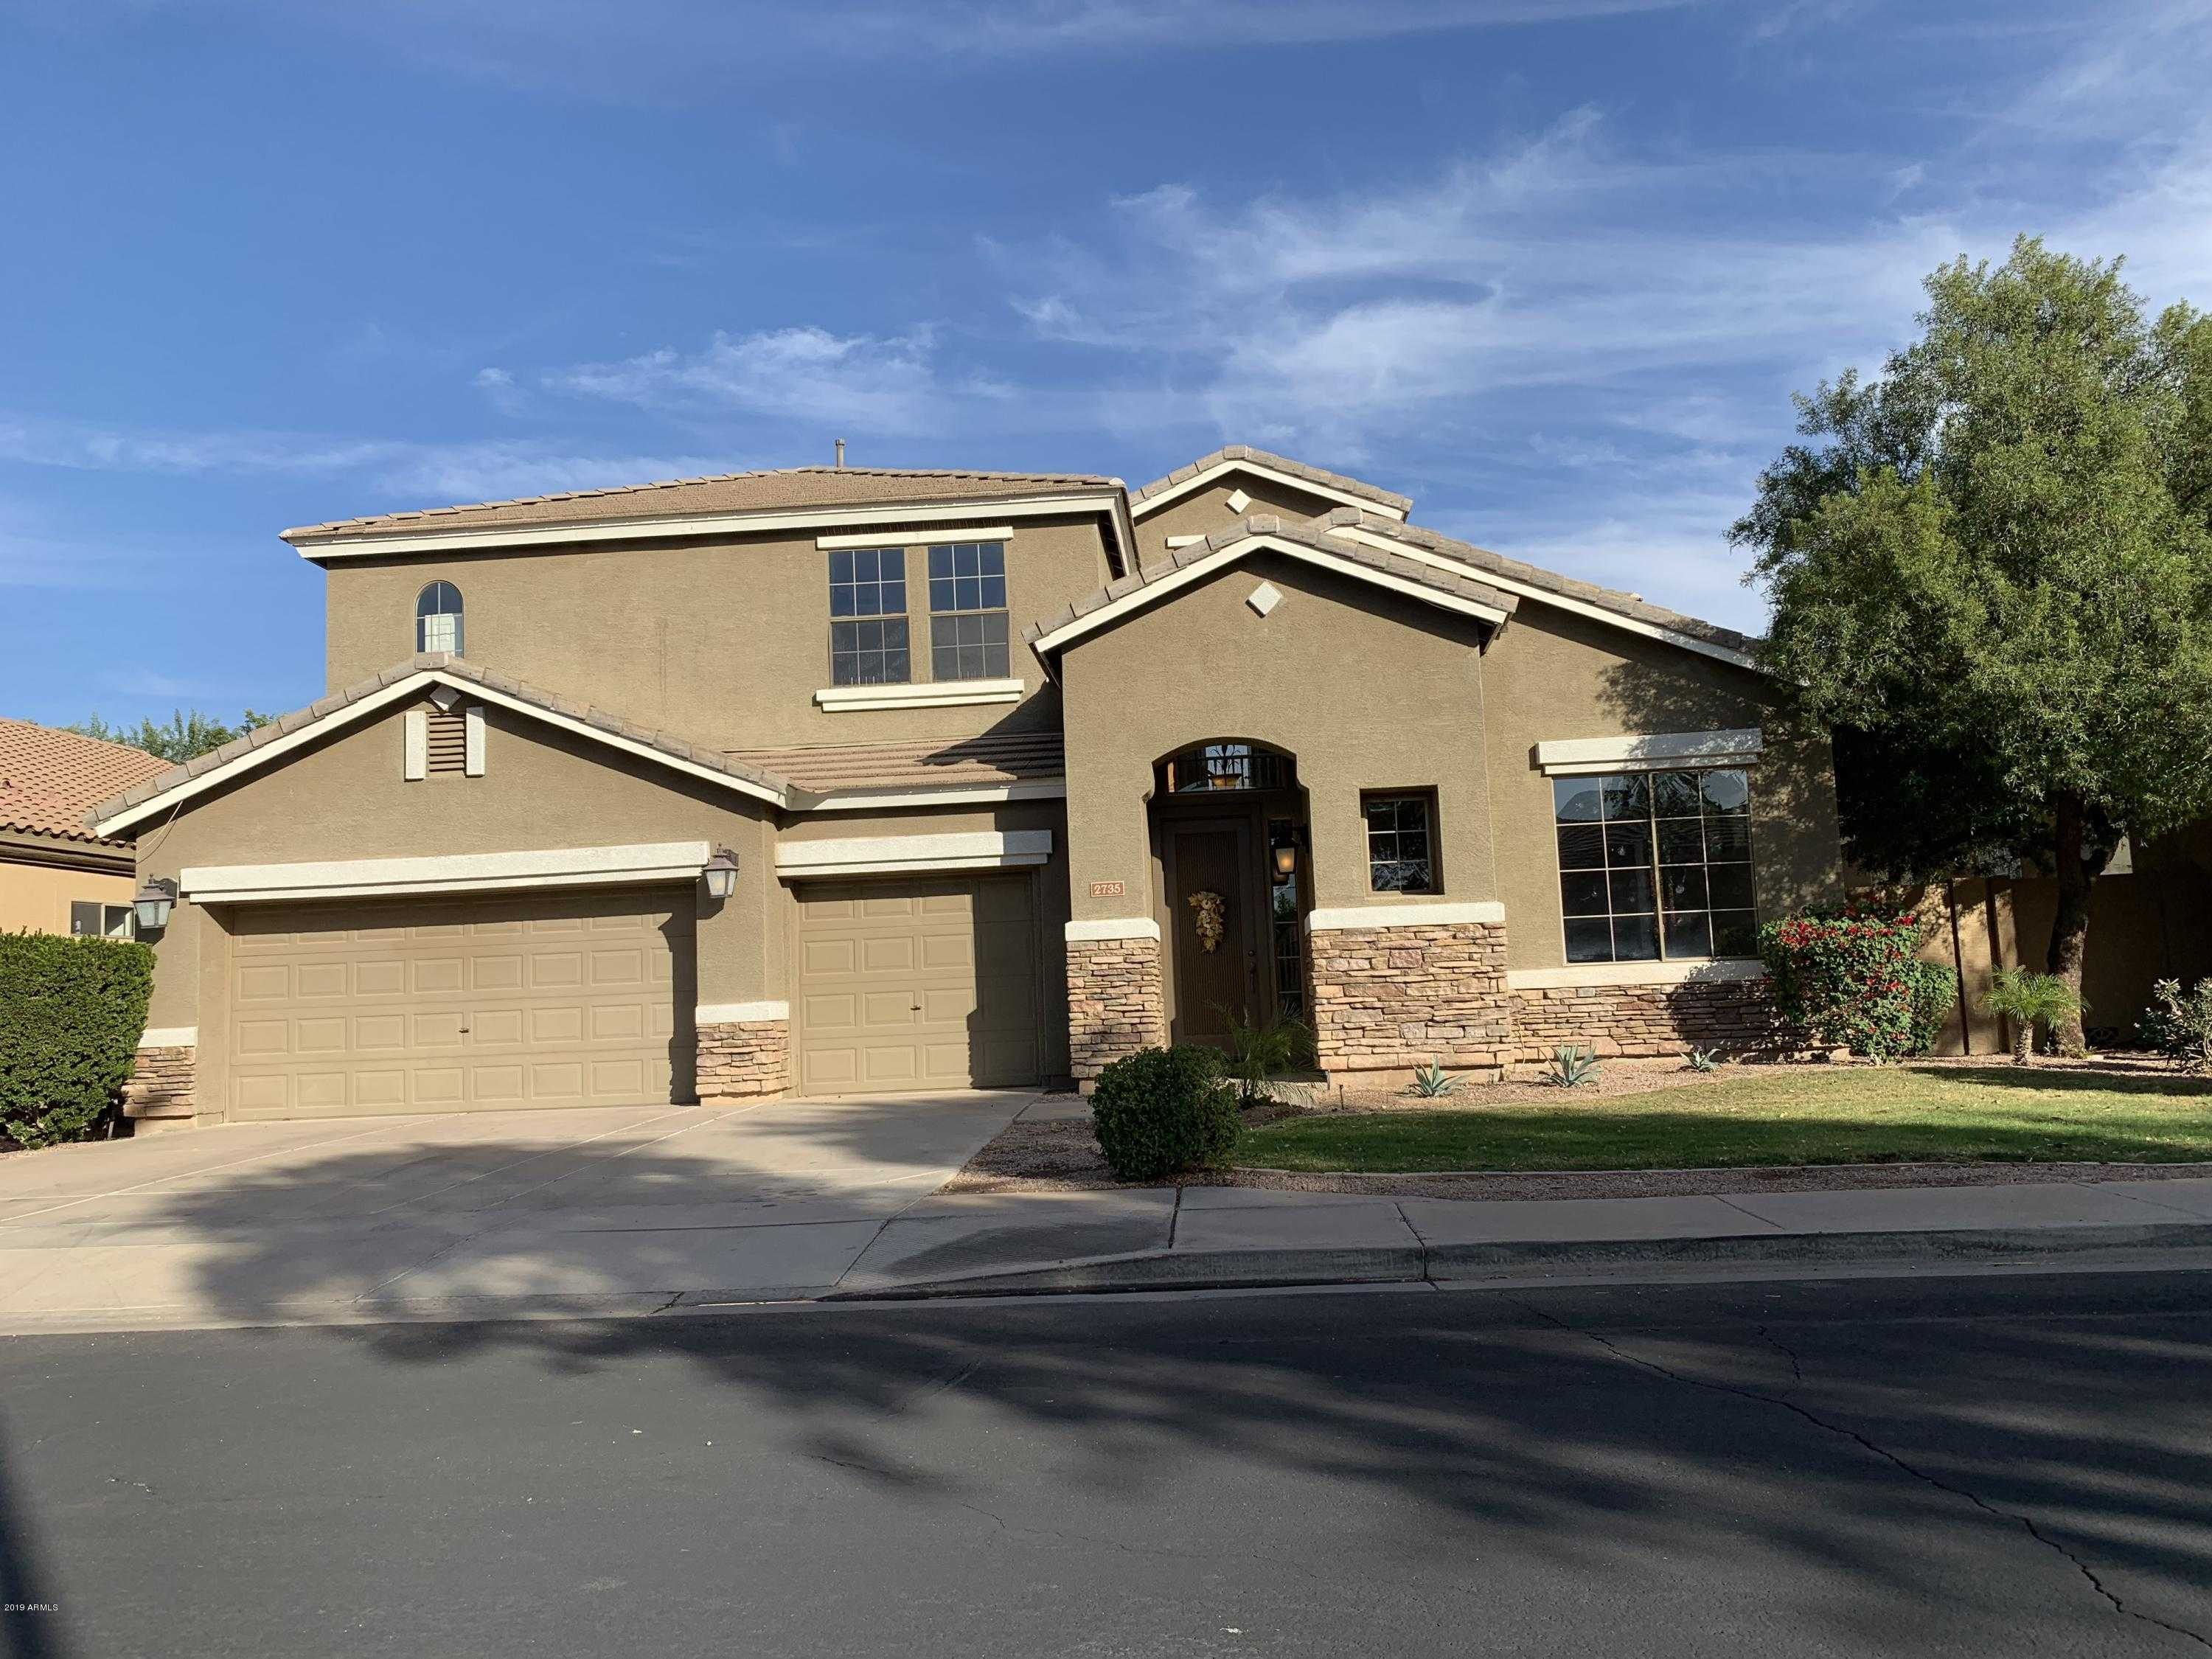 $432,900 - 5Br/4Ba - Home for Sale in Augusta Ranch Parcel 8b, Mesa